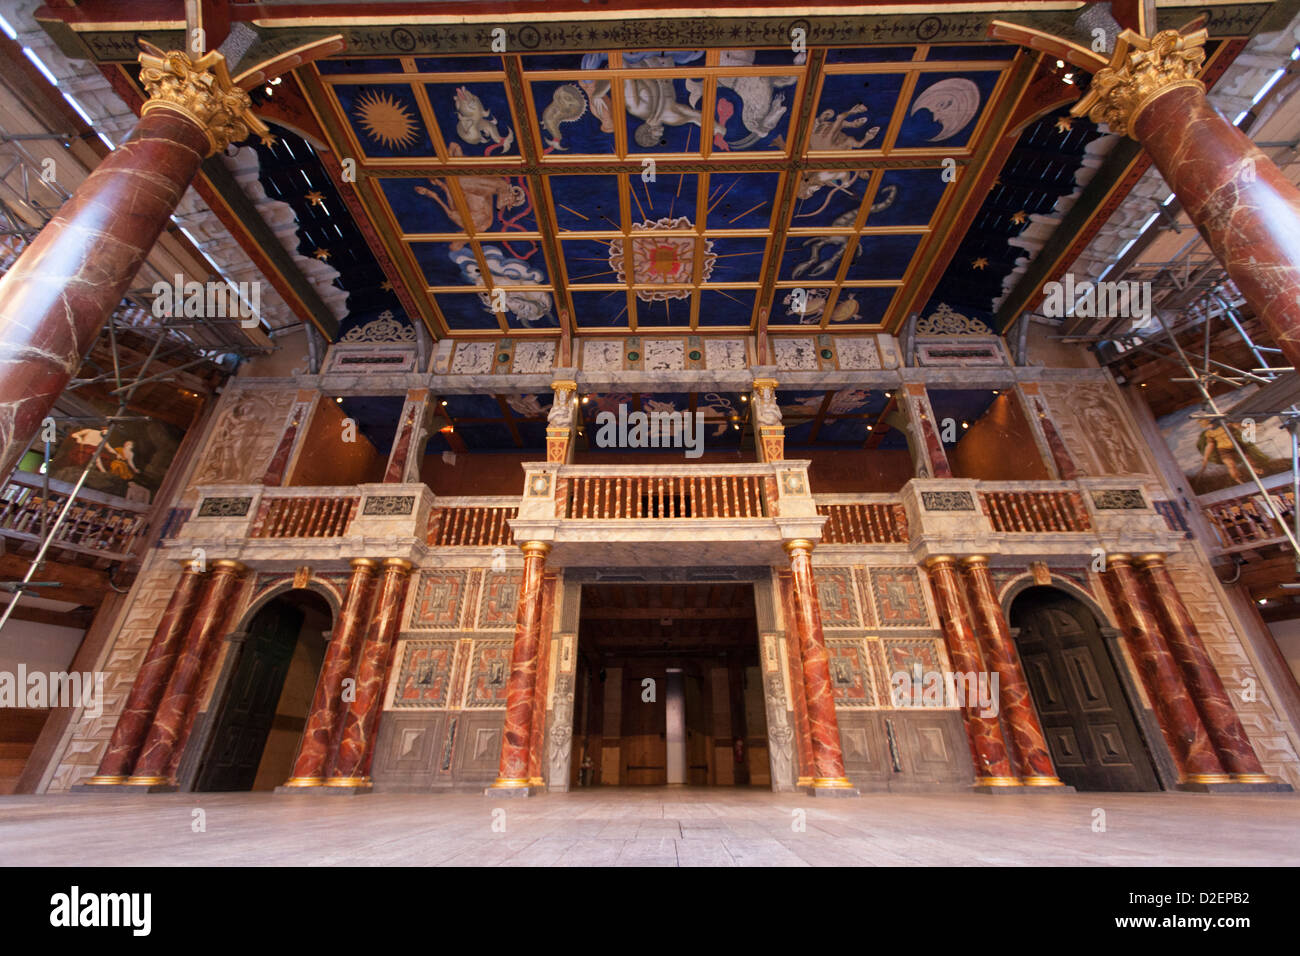 The Stage of the Globe Theatre, London - Stock Image